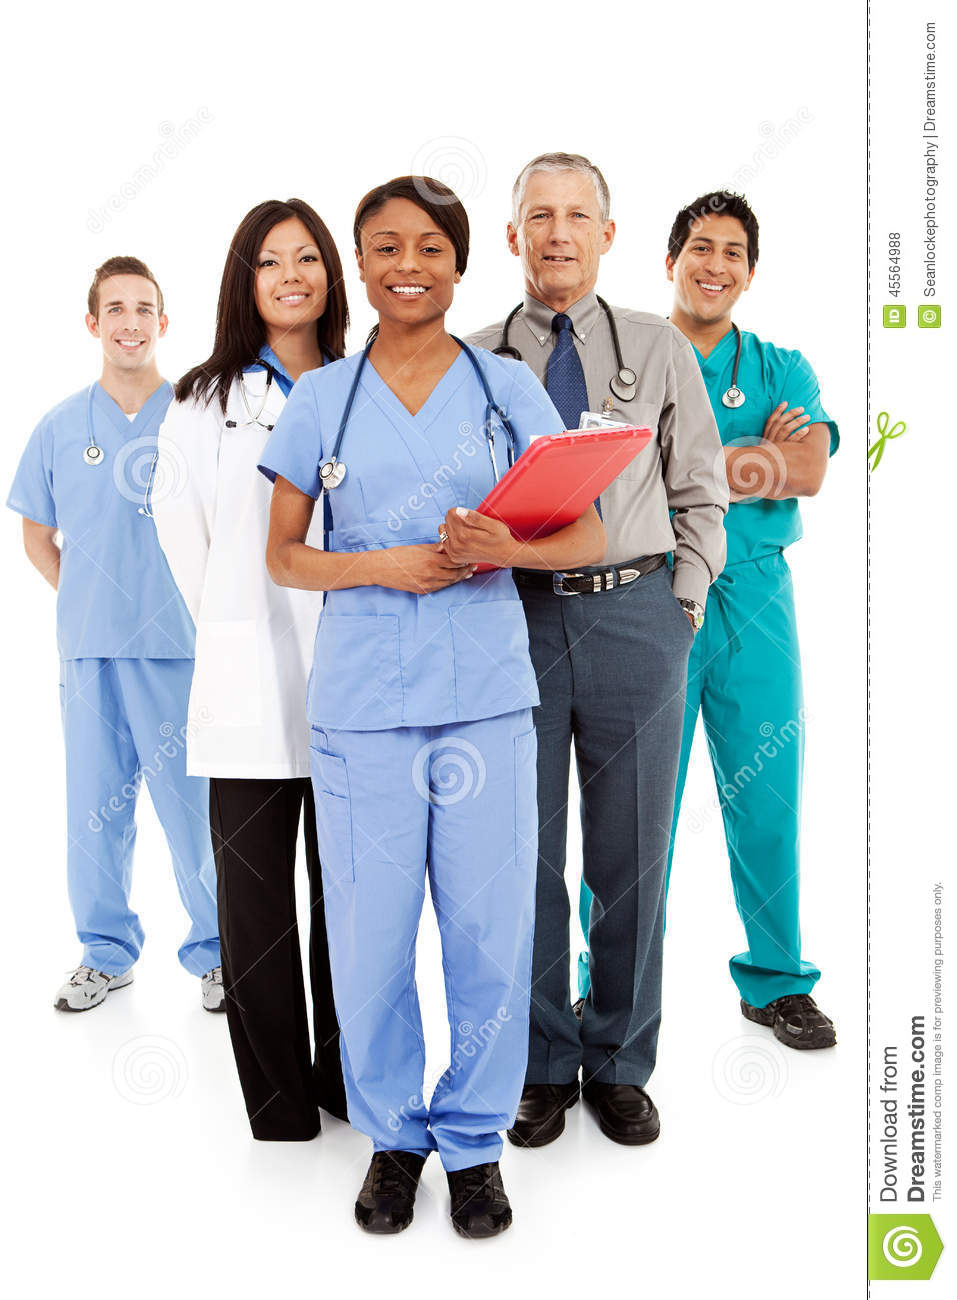 Managing professionals working with physicians